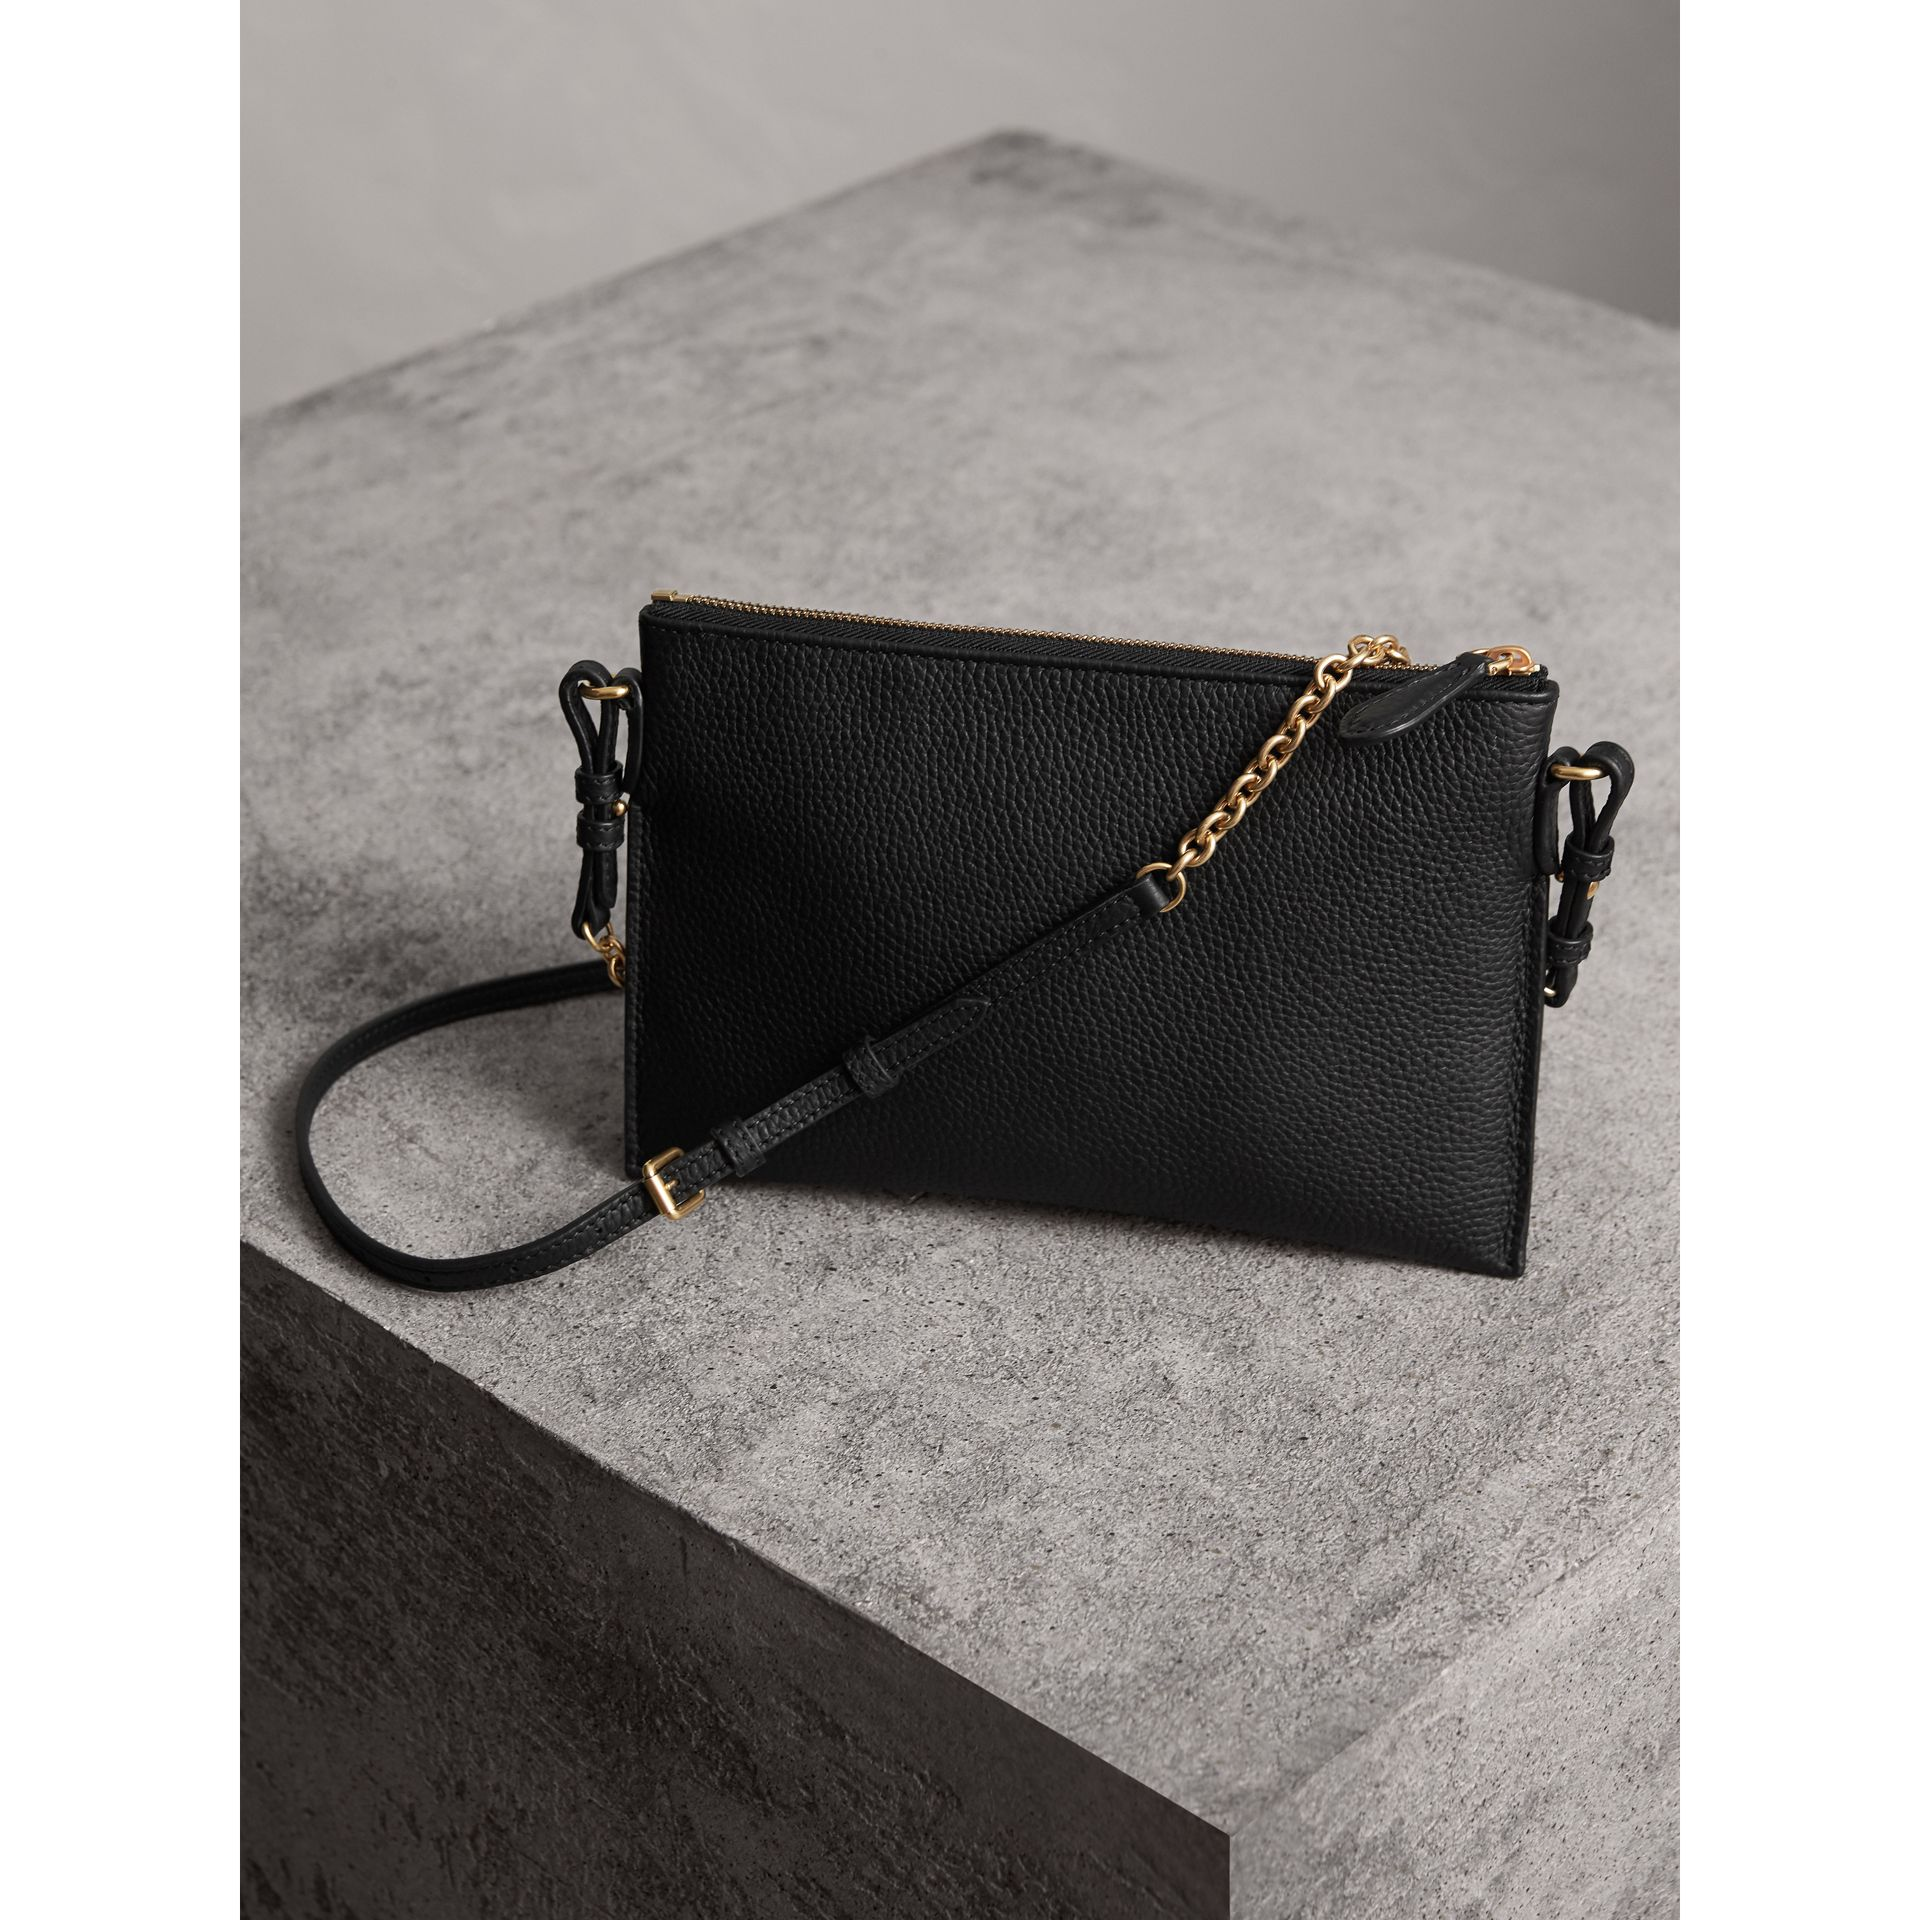 Embossed Leather Clutch Bag in Black - Women | Burberry Canada - gallery image 4